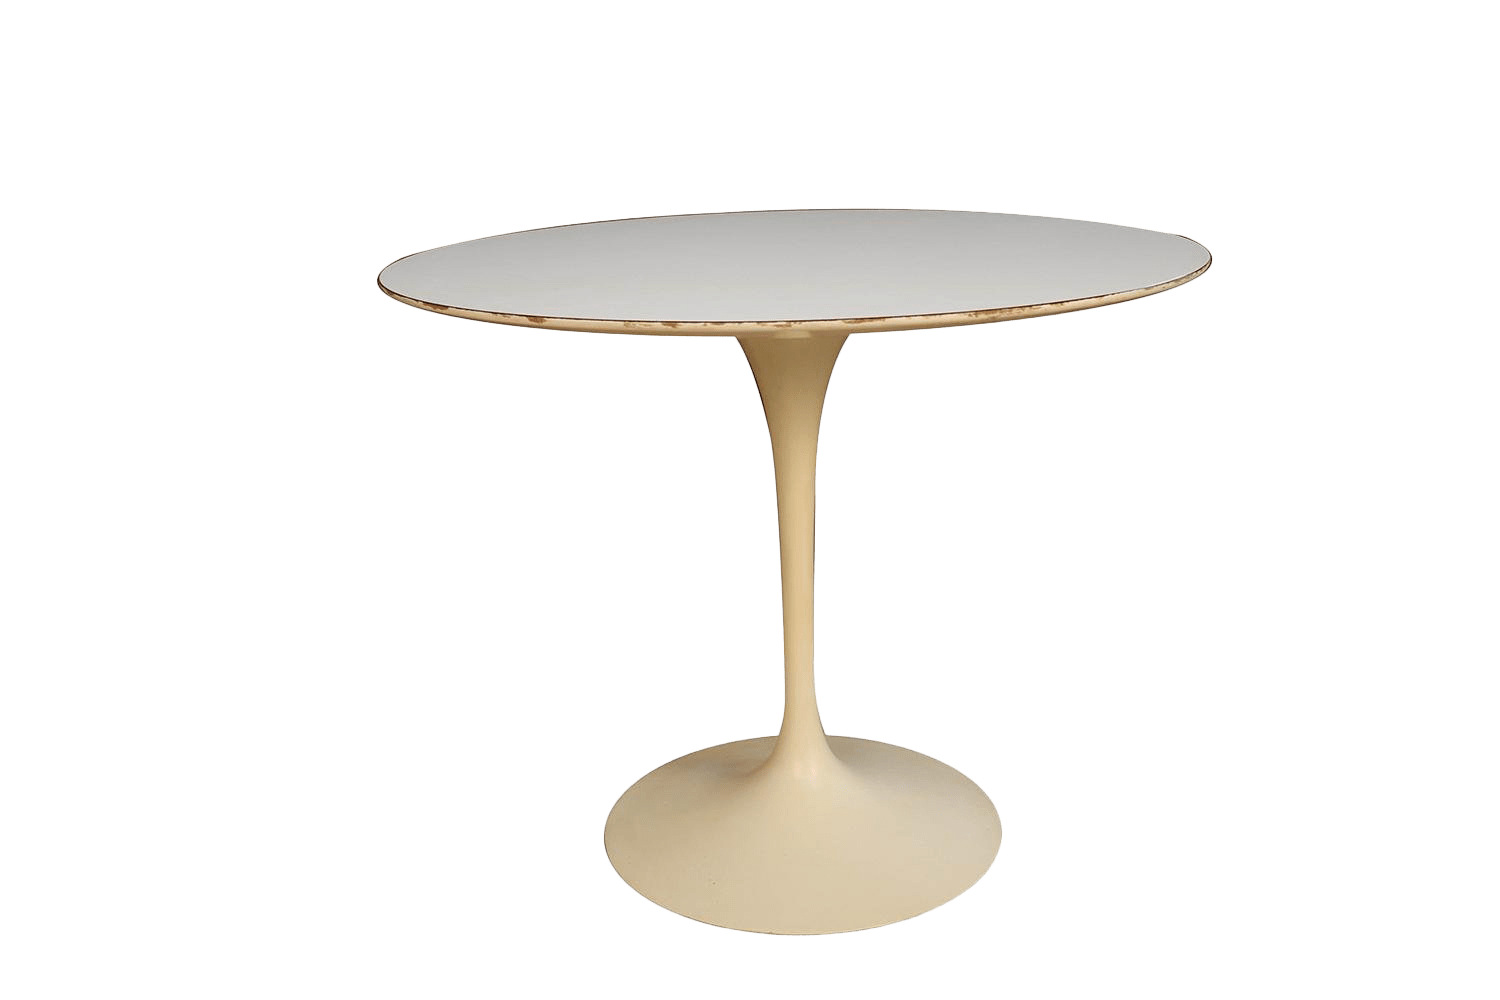 Knoll Table Early Knoll Mid Century Vintage Round Saarinen Tulip Table